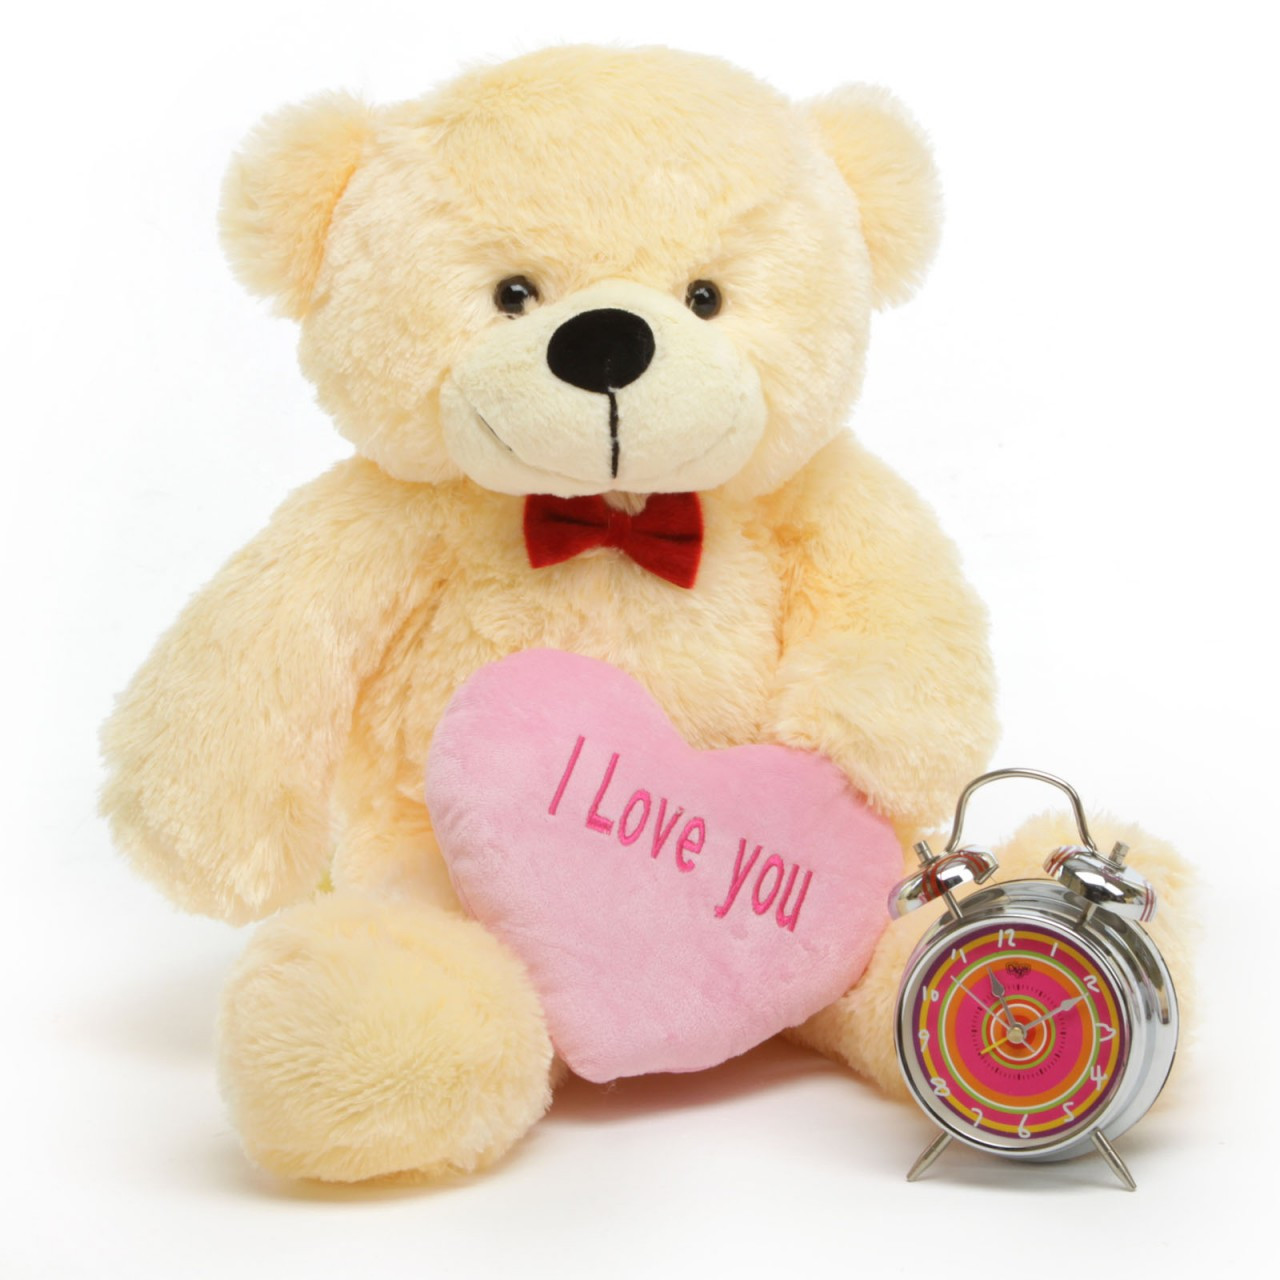 I Love You Heart Teddy Bear Package featuring Cozy Cuddles